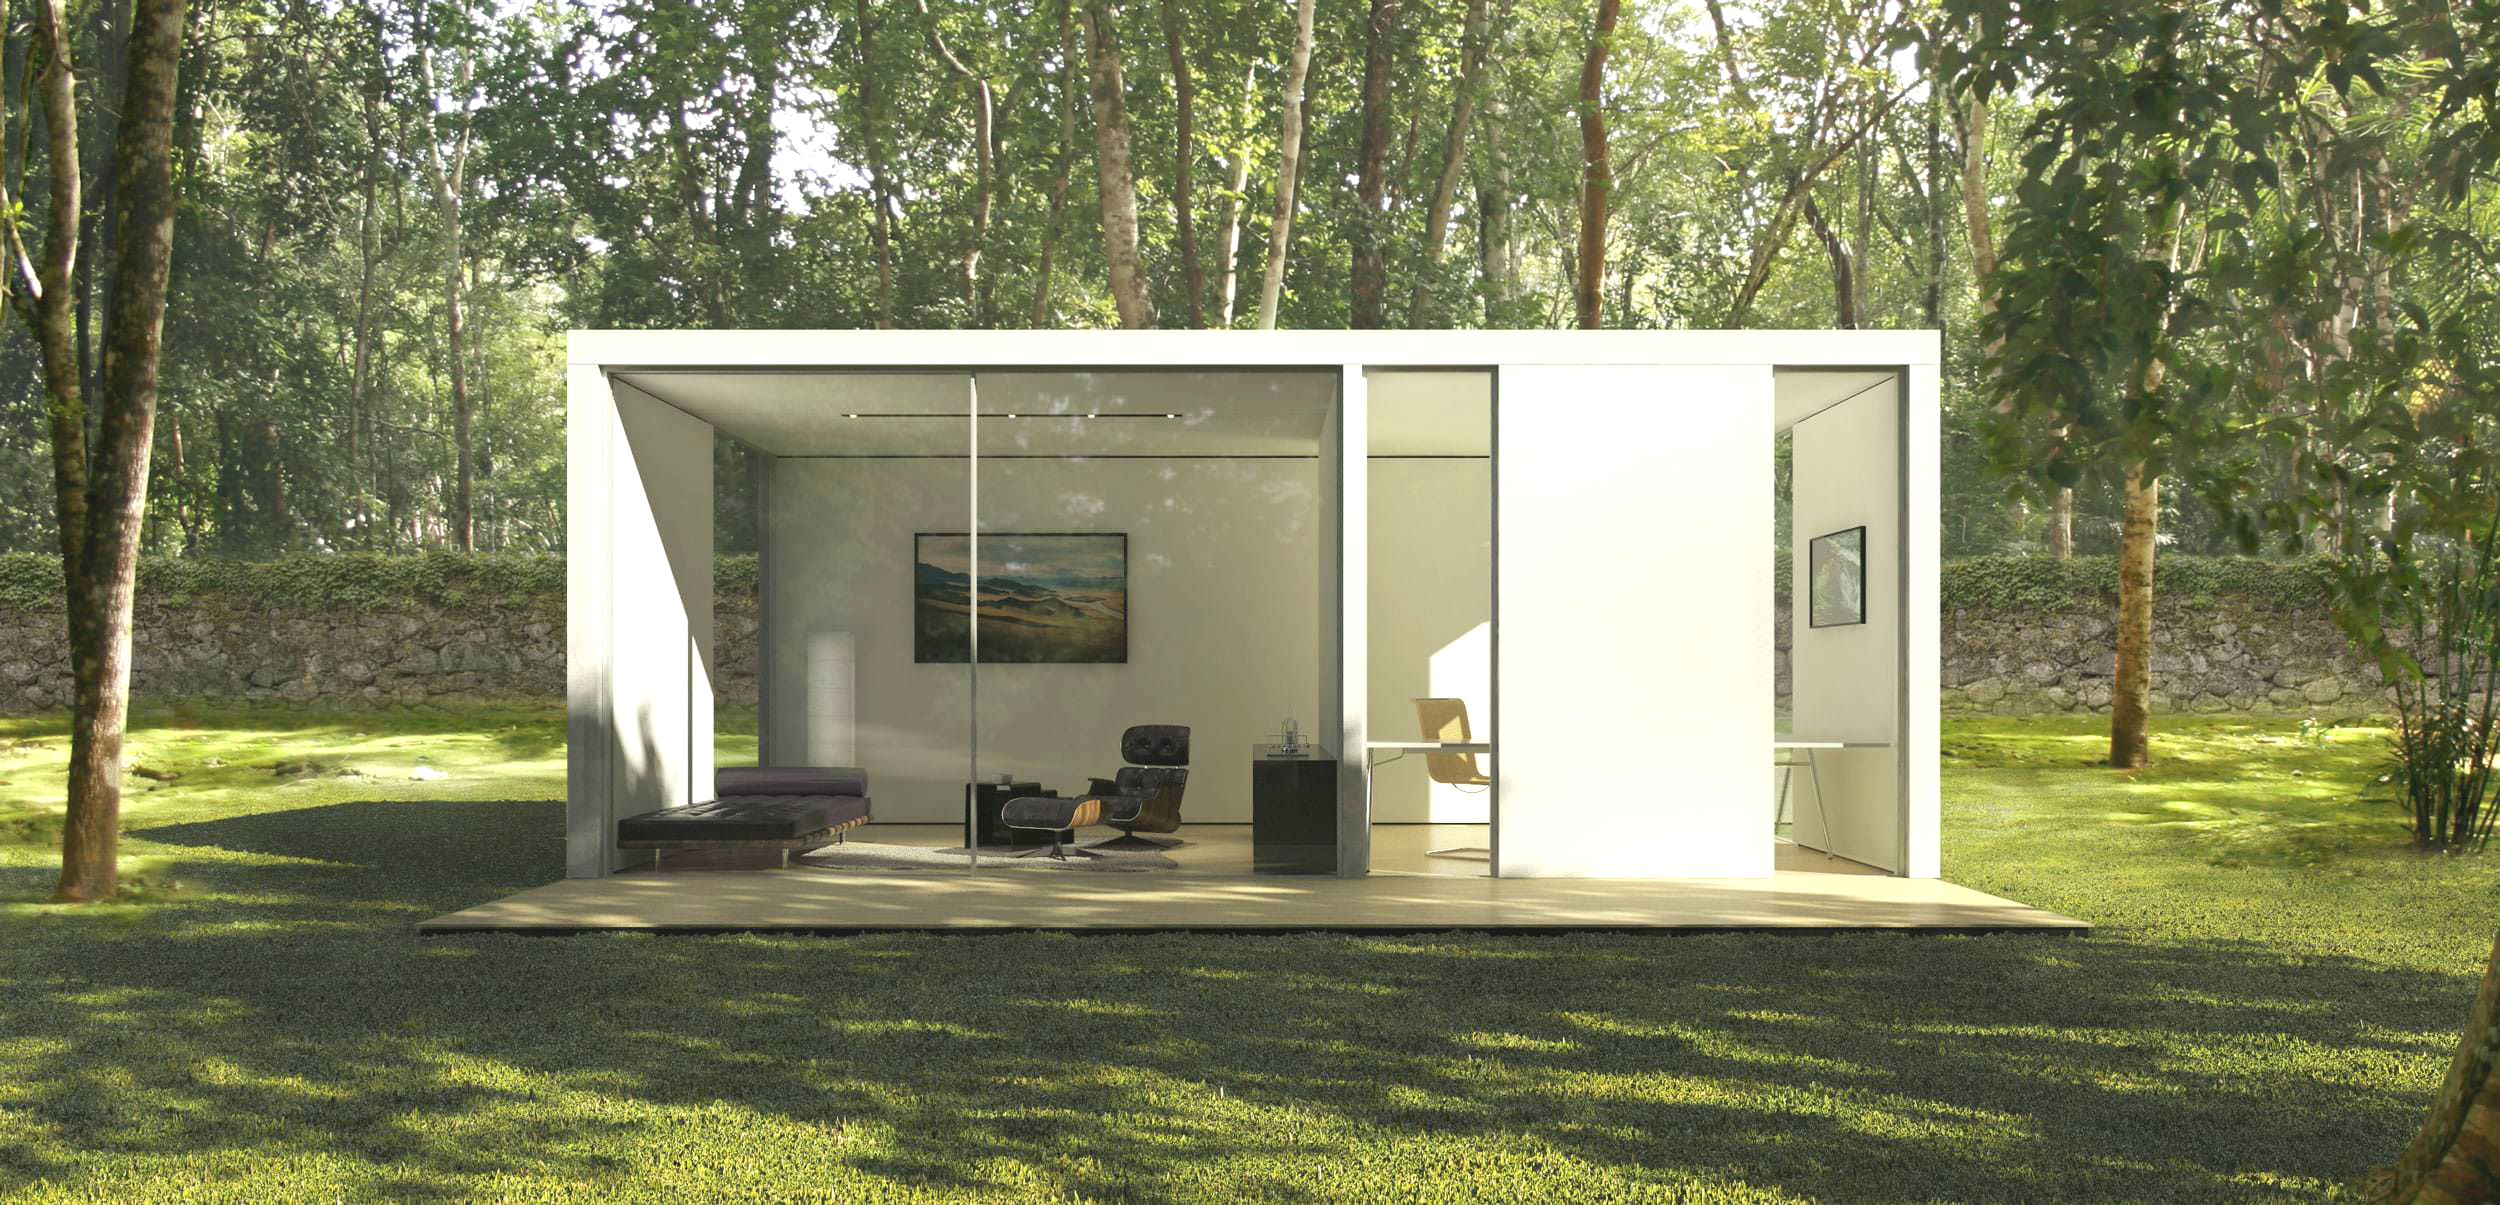 These modern prefab homes were designed by computer algorithms